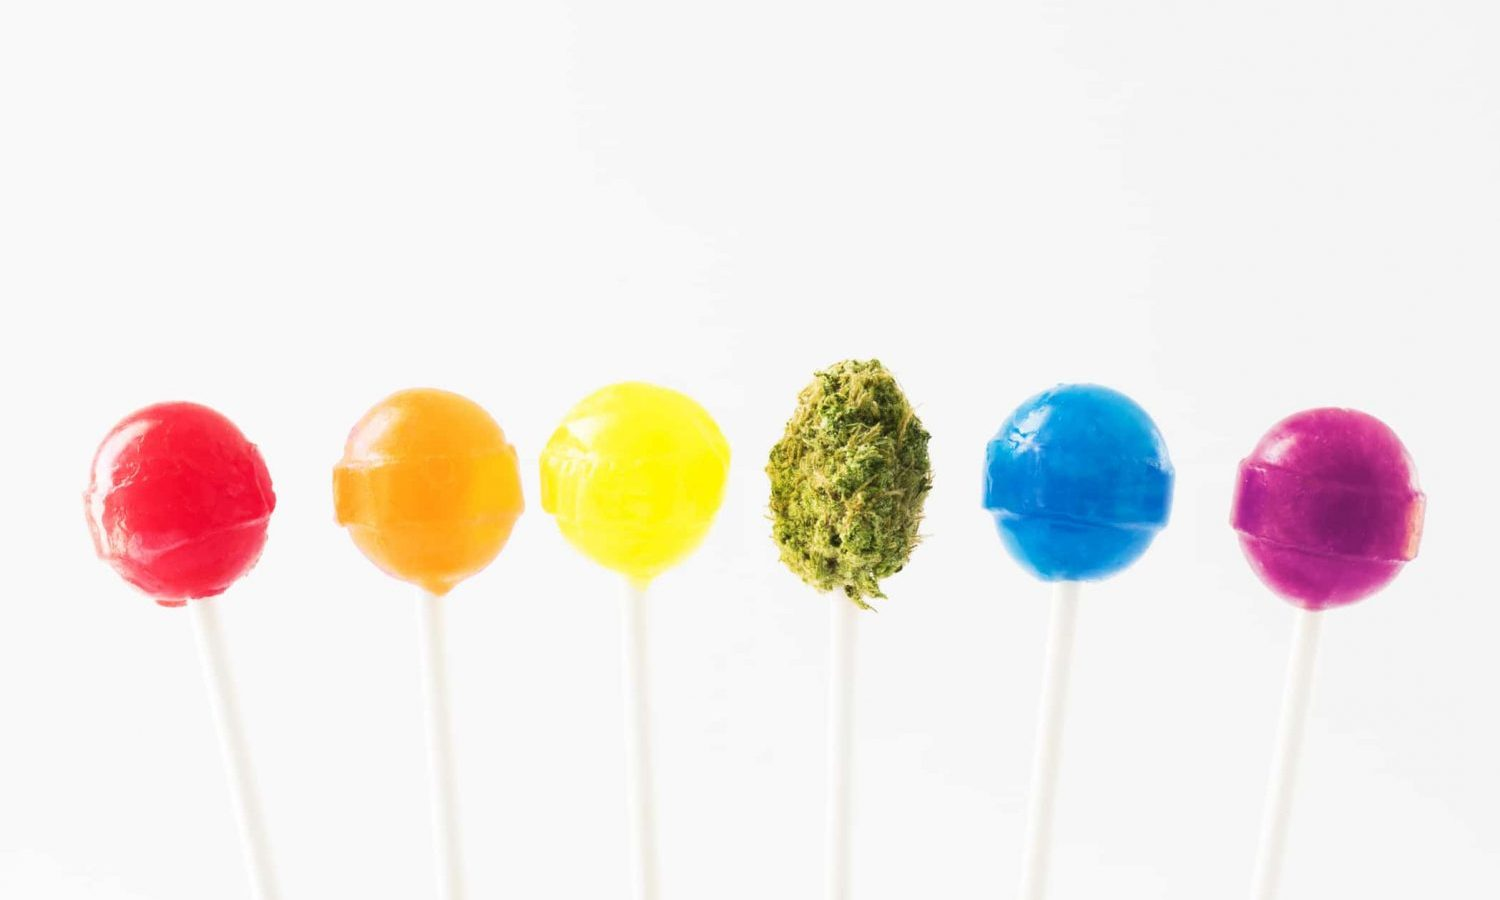 CBD Edibles Not All They Claim To Be